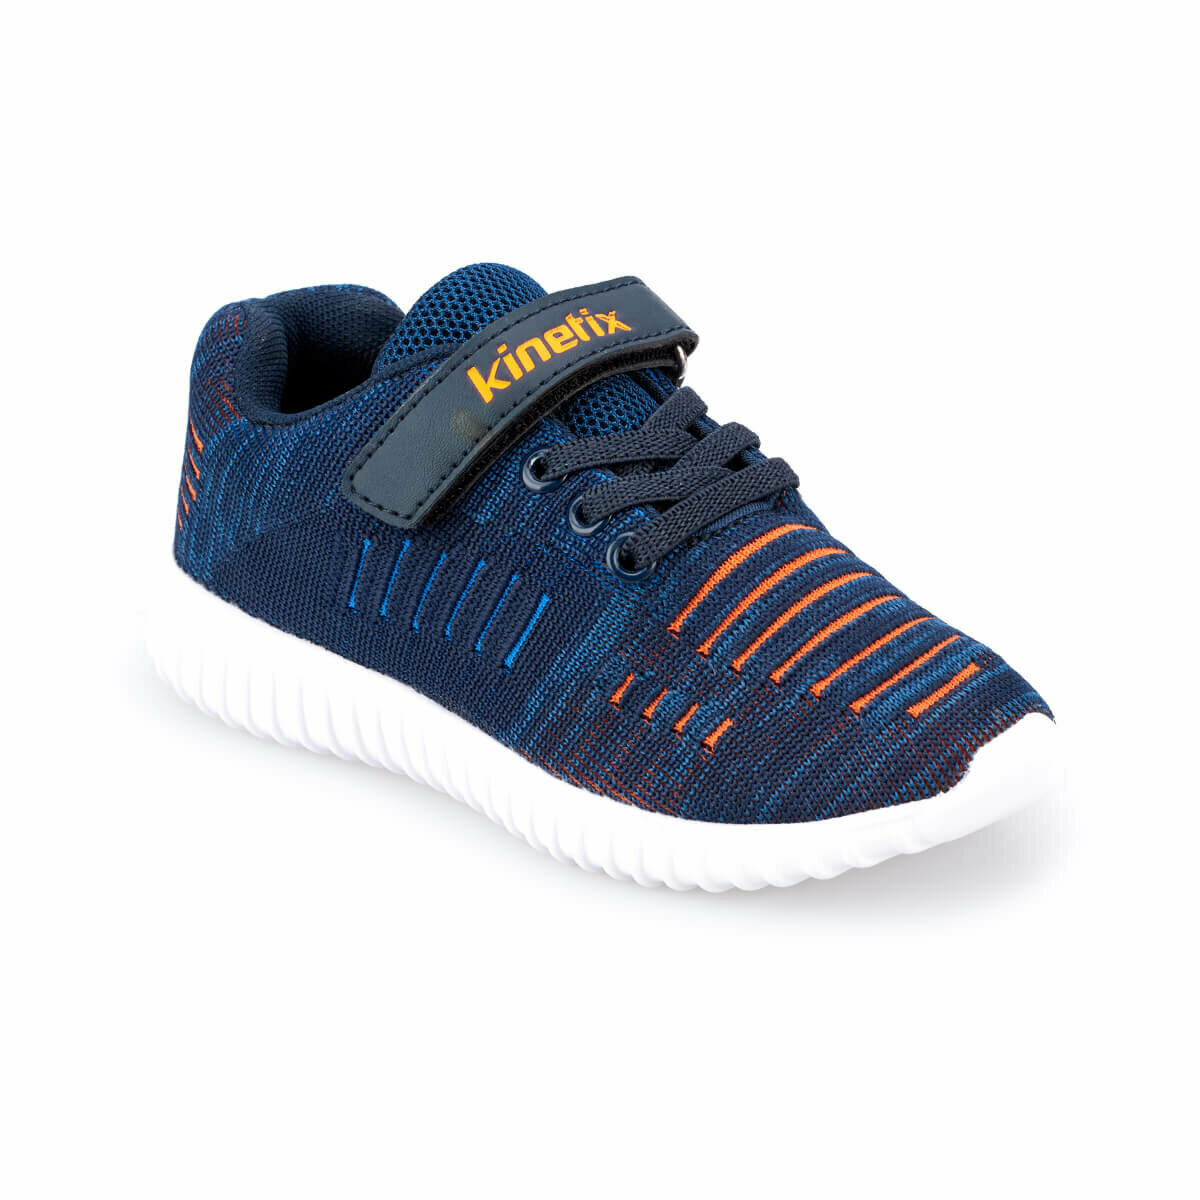 FLO HAGAR Navy Blue Male Child Hiking Shoes KINETIX